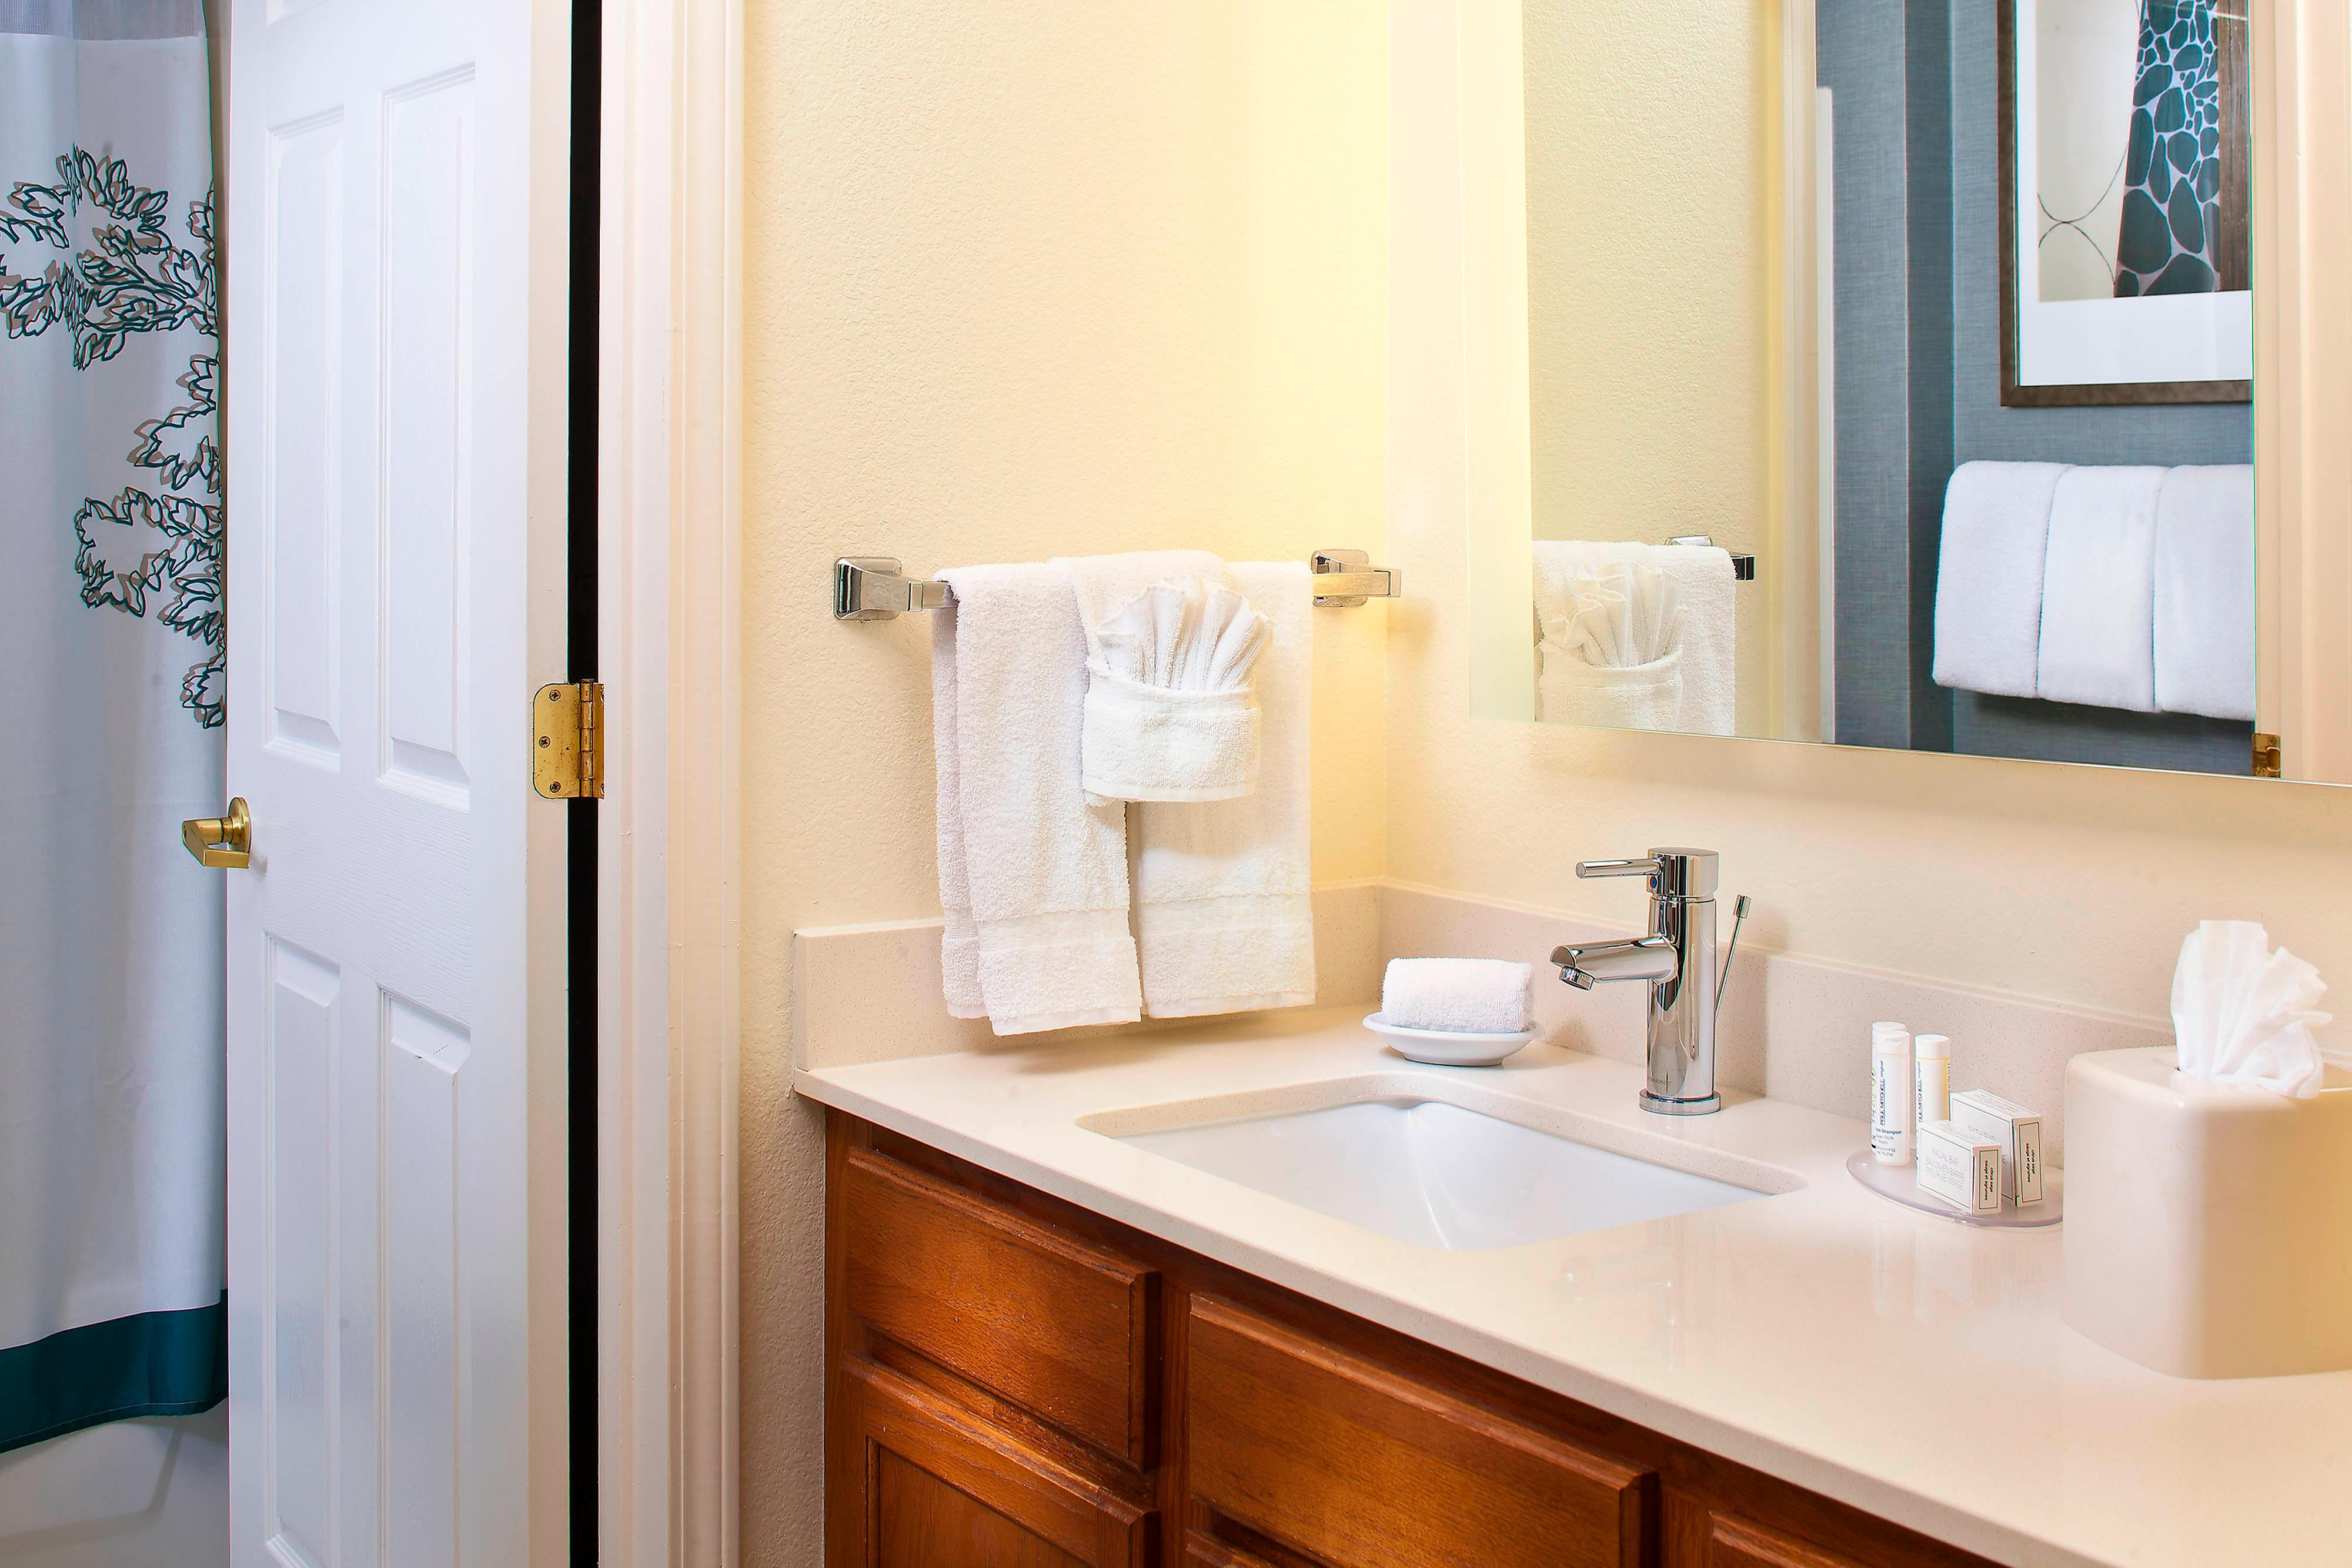 Residence Inn Baton Rouge All-Suite Hotel